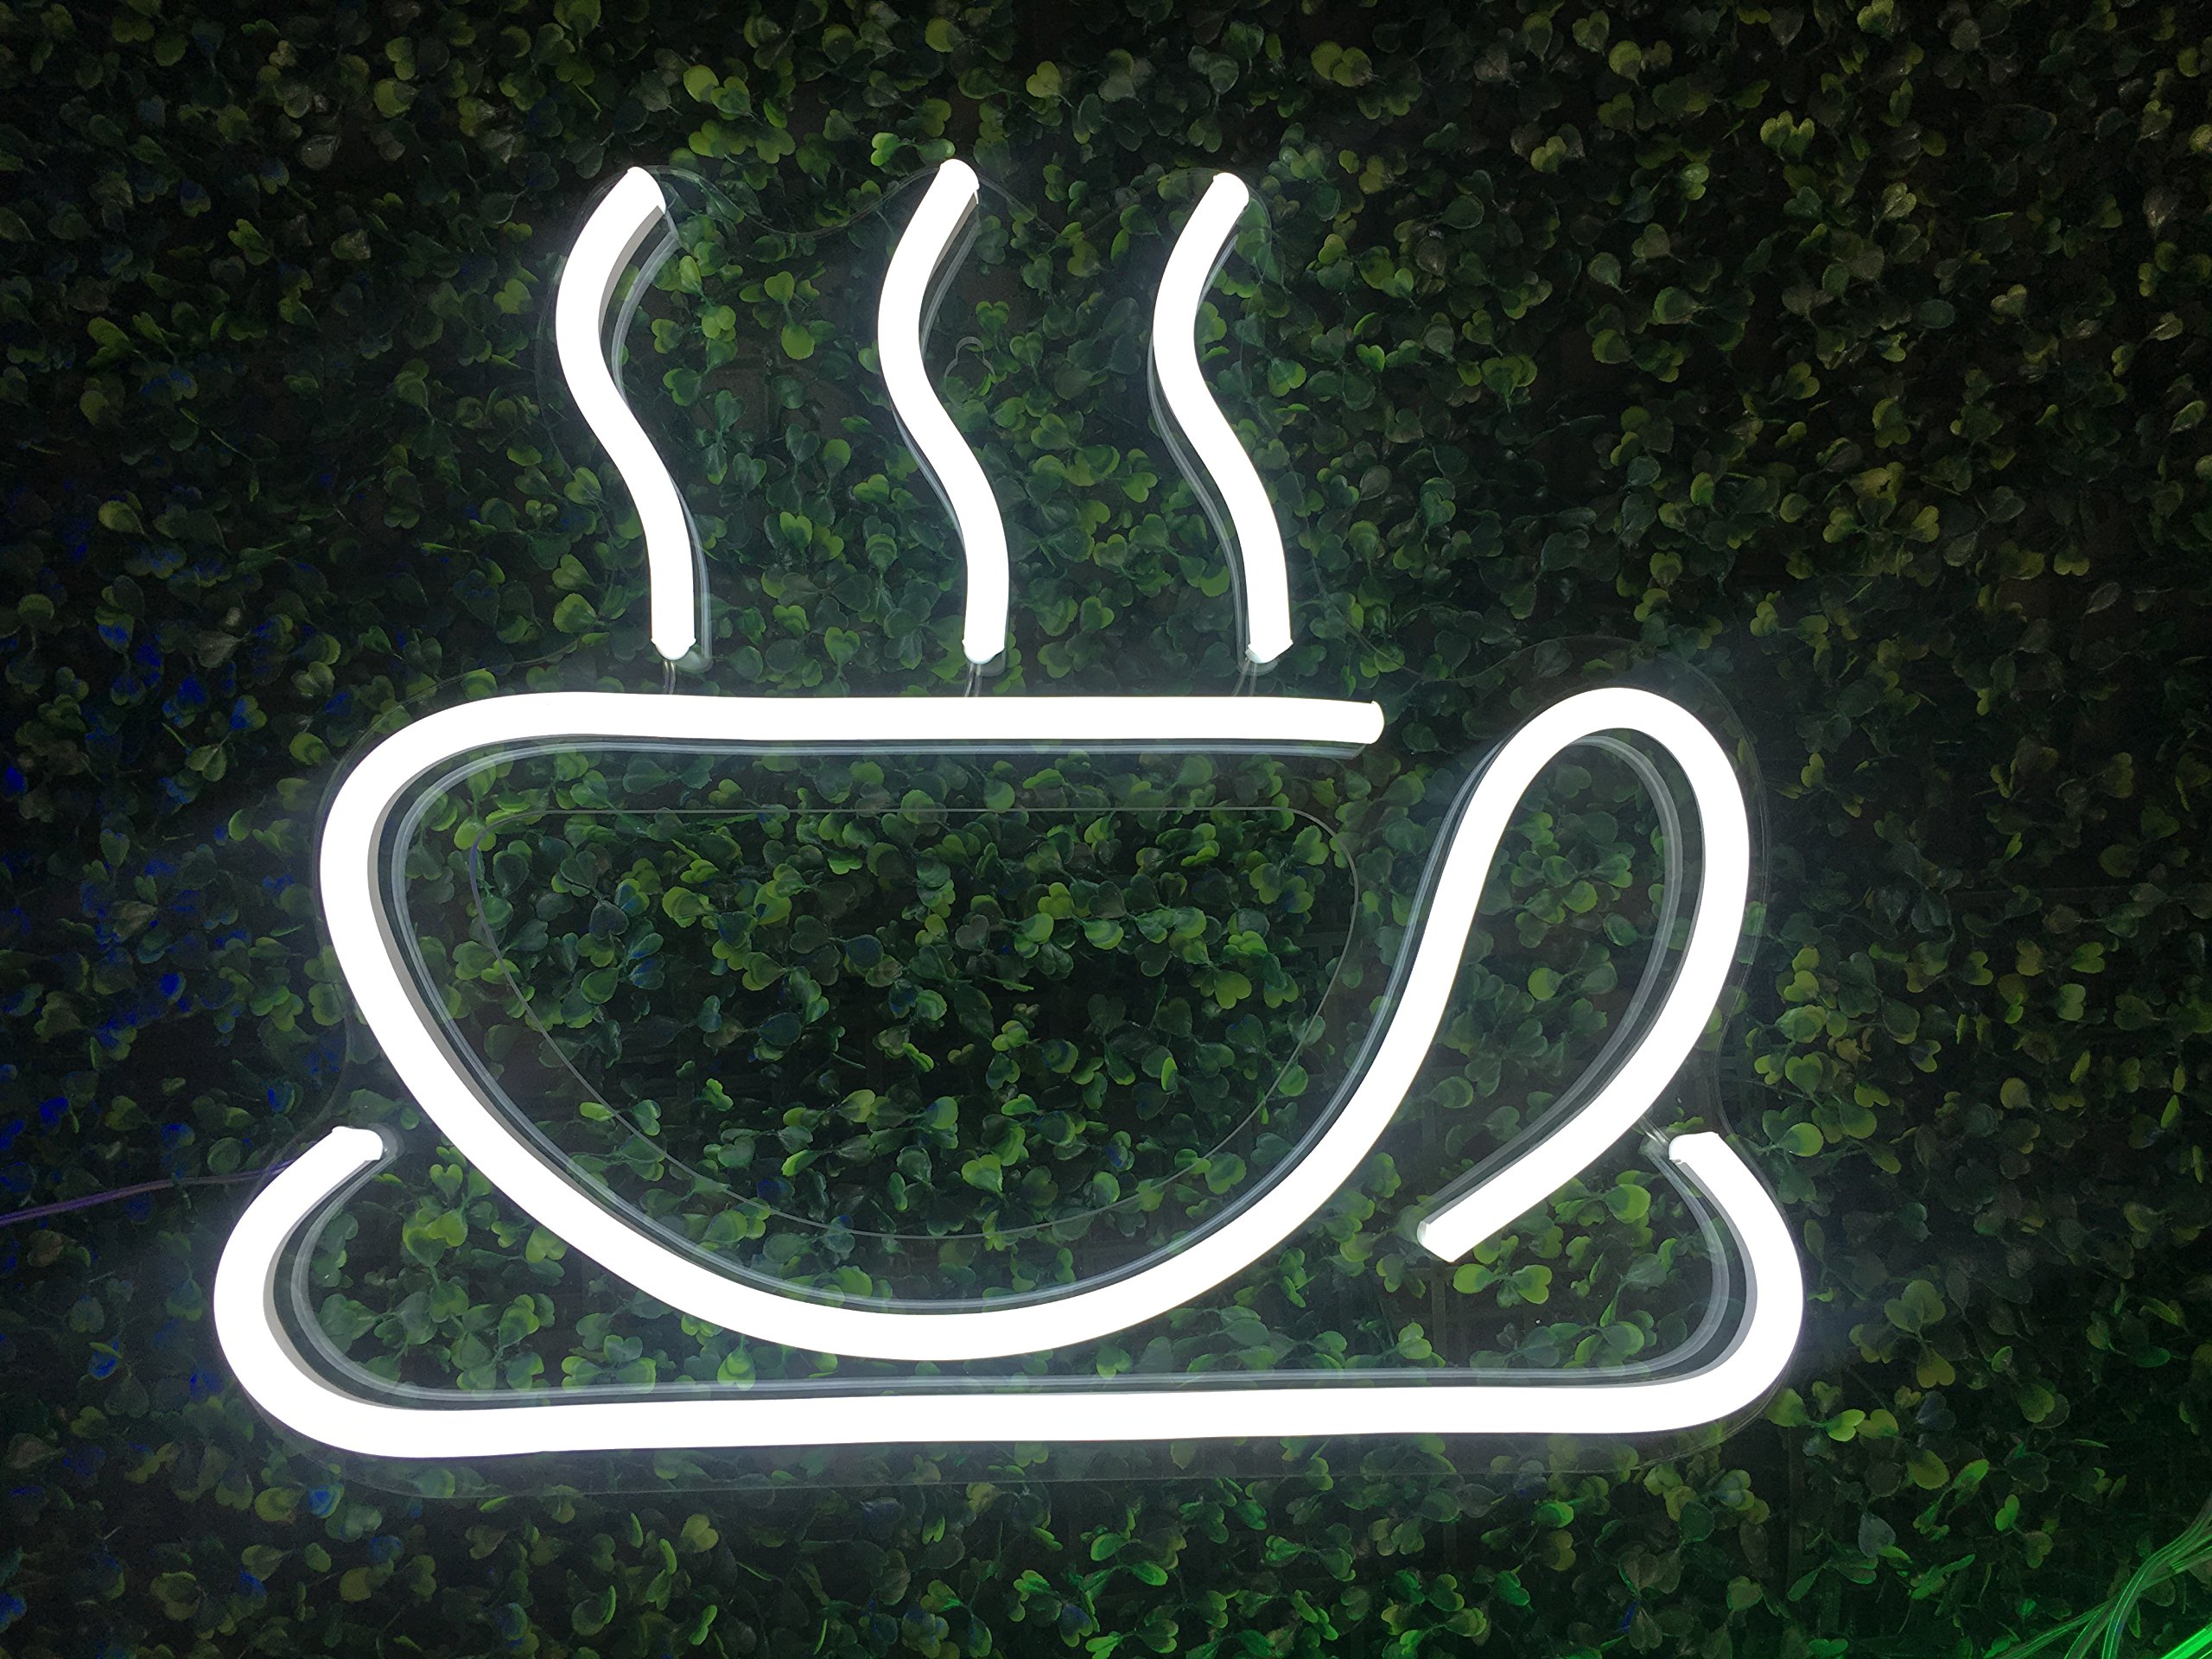 Coffee Cup Signboard Shop Neon Light Sign Cafe Neon Light Sign Display Coffee Cup Logo Neon Sign Club Garrag Dealers Windows Garage Wall Sign 10\'\' 8.6\'\'